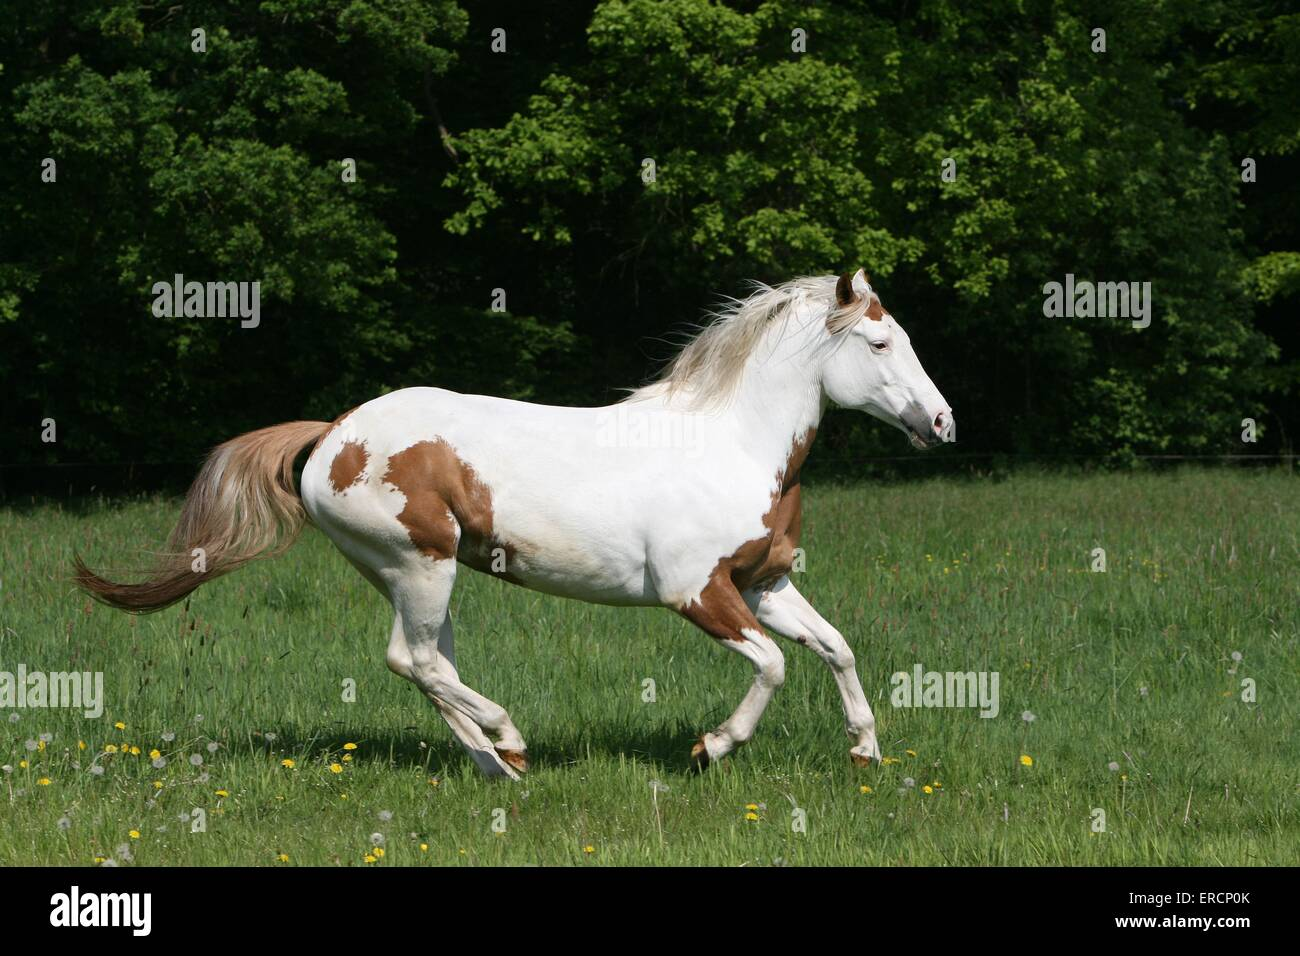 Paint Horse High Resolution Stock Photography And Images Alamy